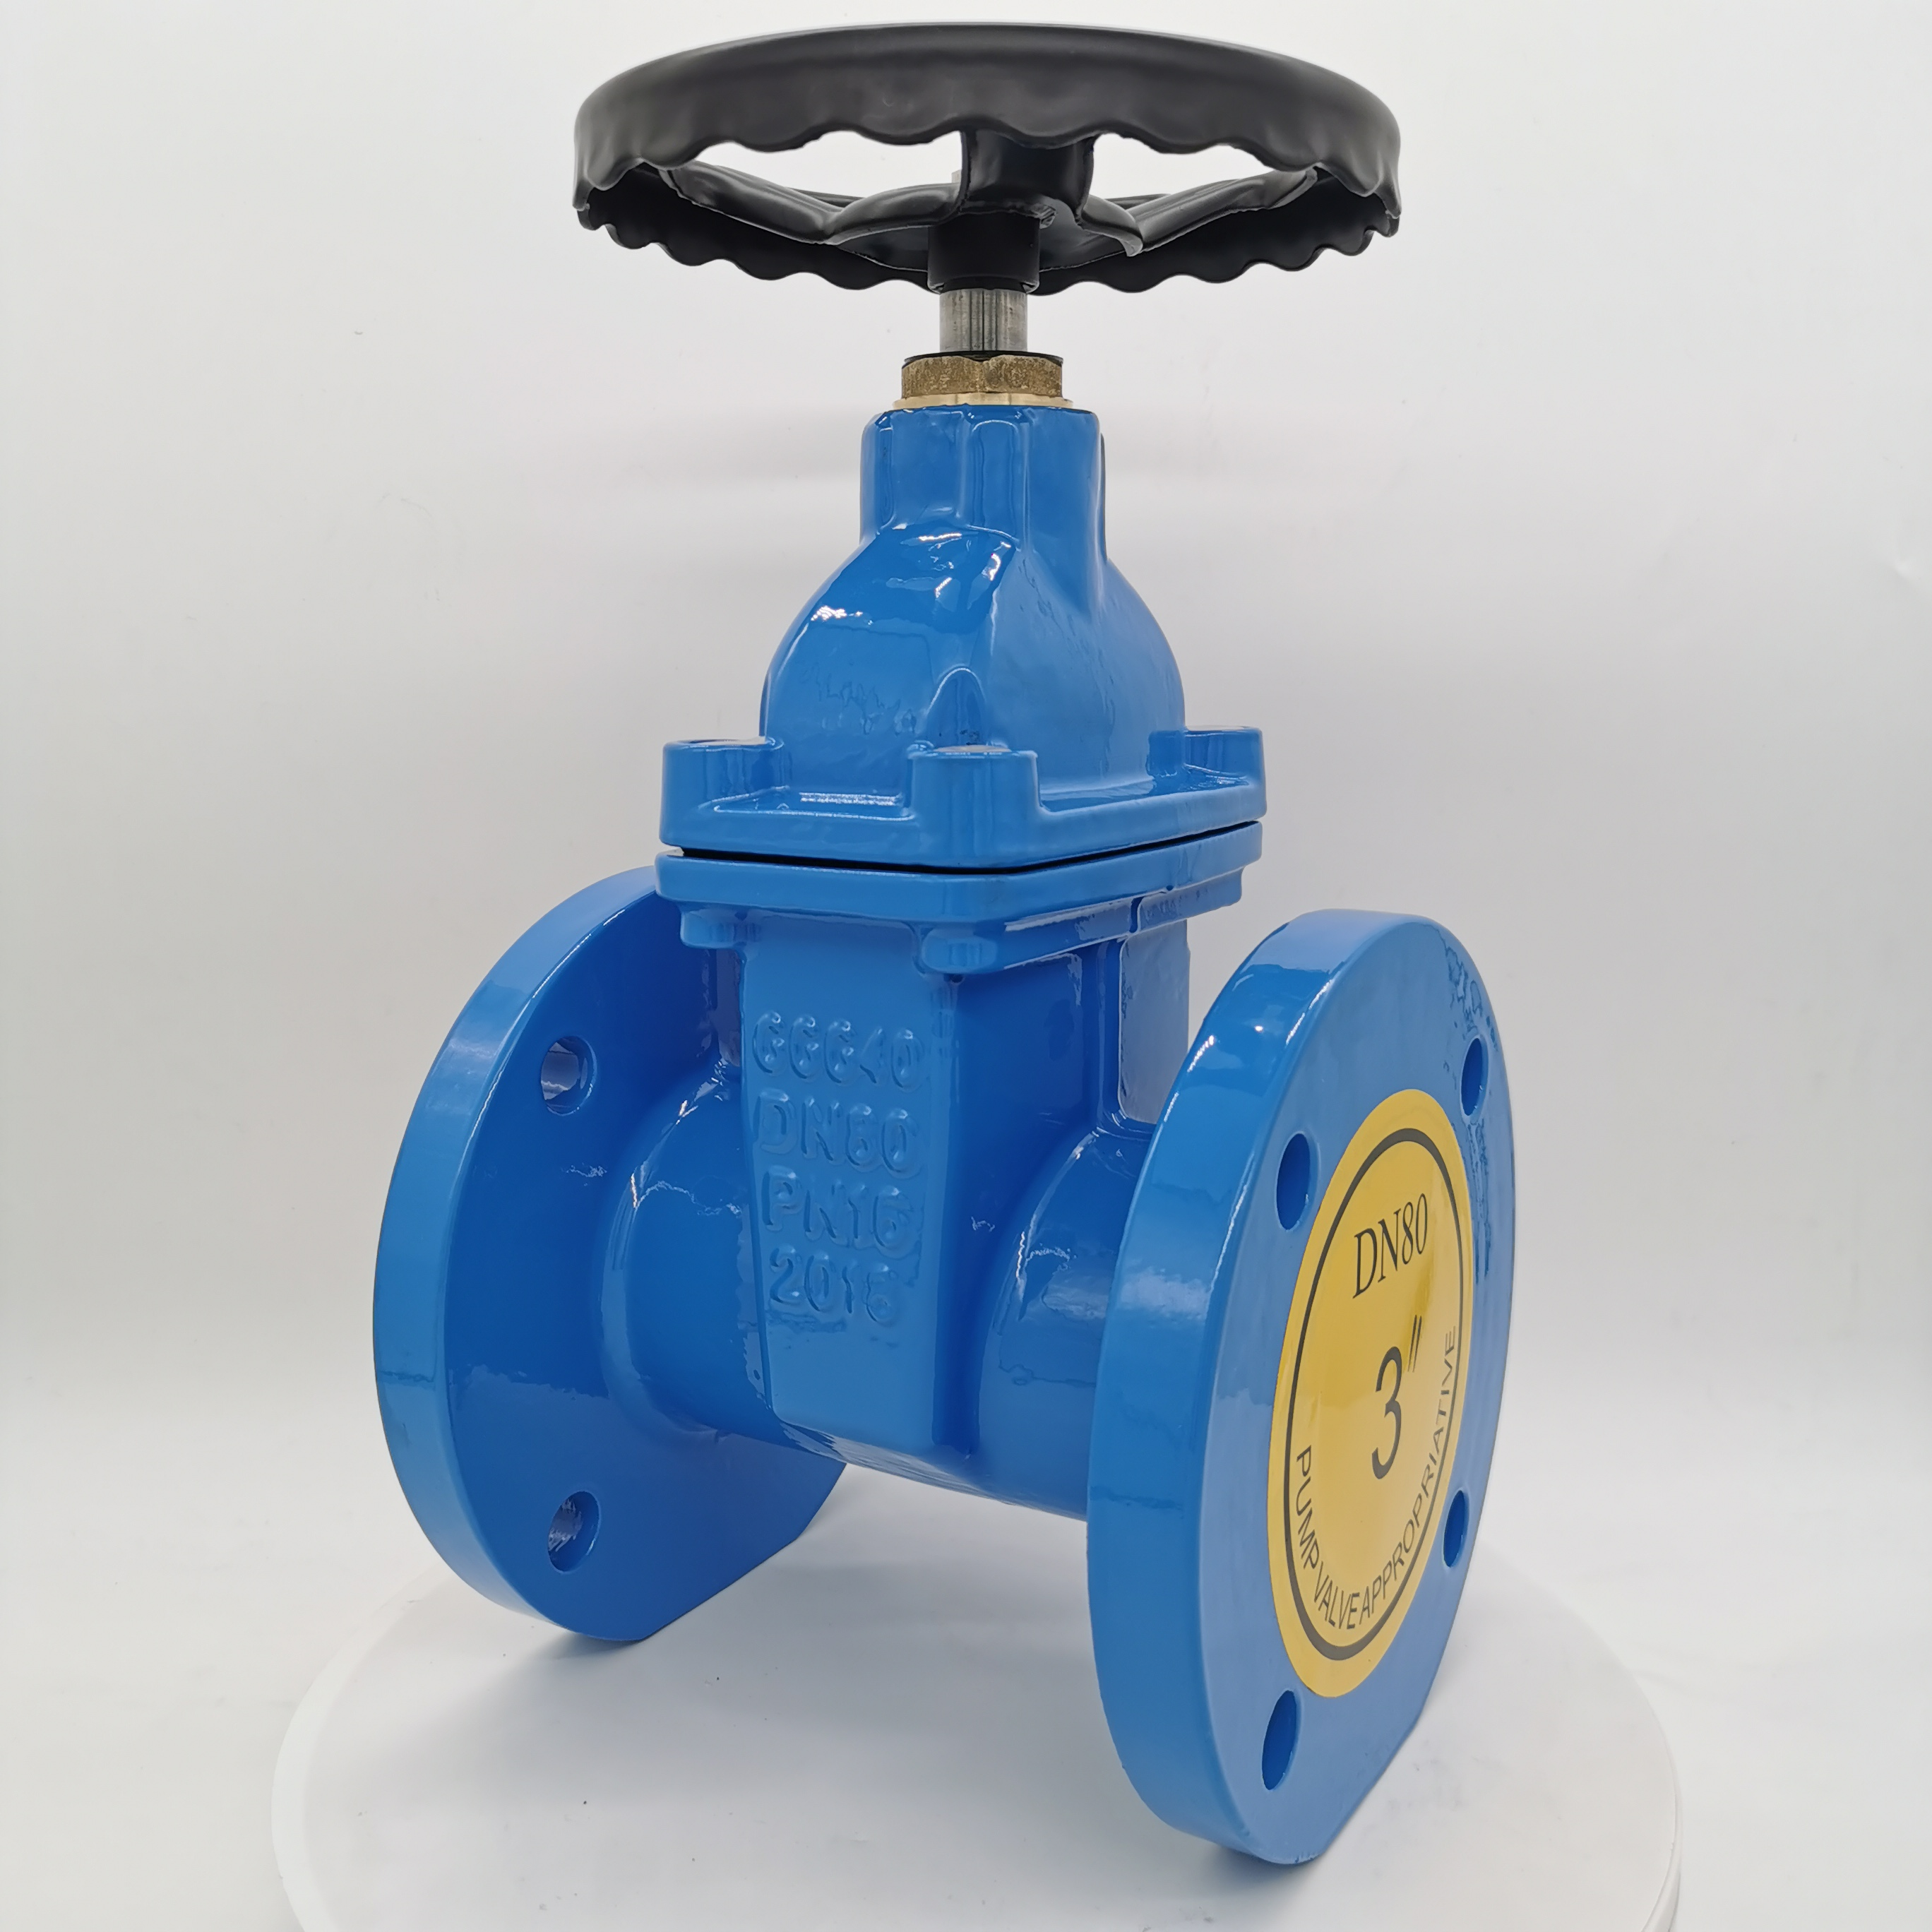 Do You Know About the Gate Valve?